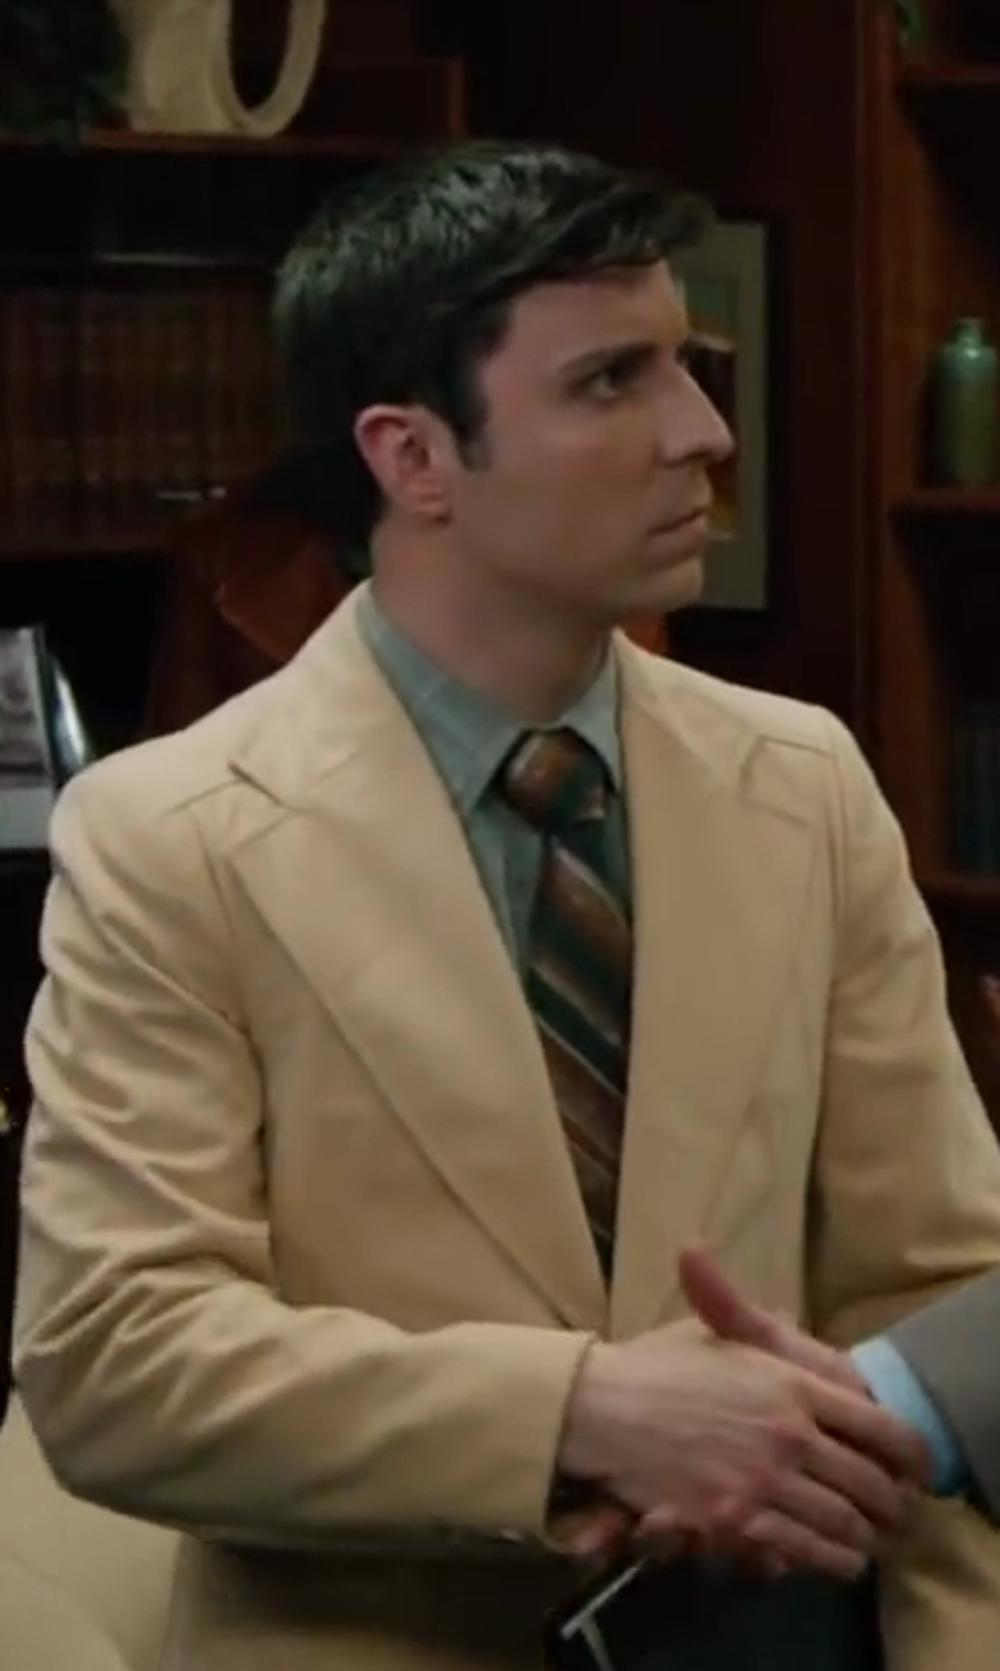 Dave Pileggi with Yournecktieshop Orange Striped - 1970s Countess Mara Necktie in Anchorman 2: The Legend Continues